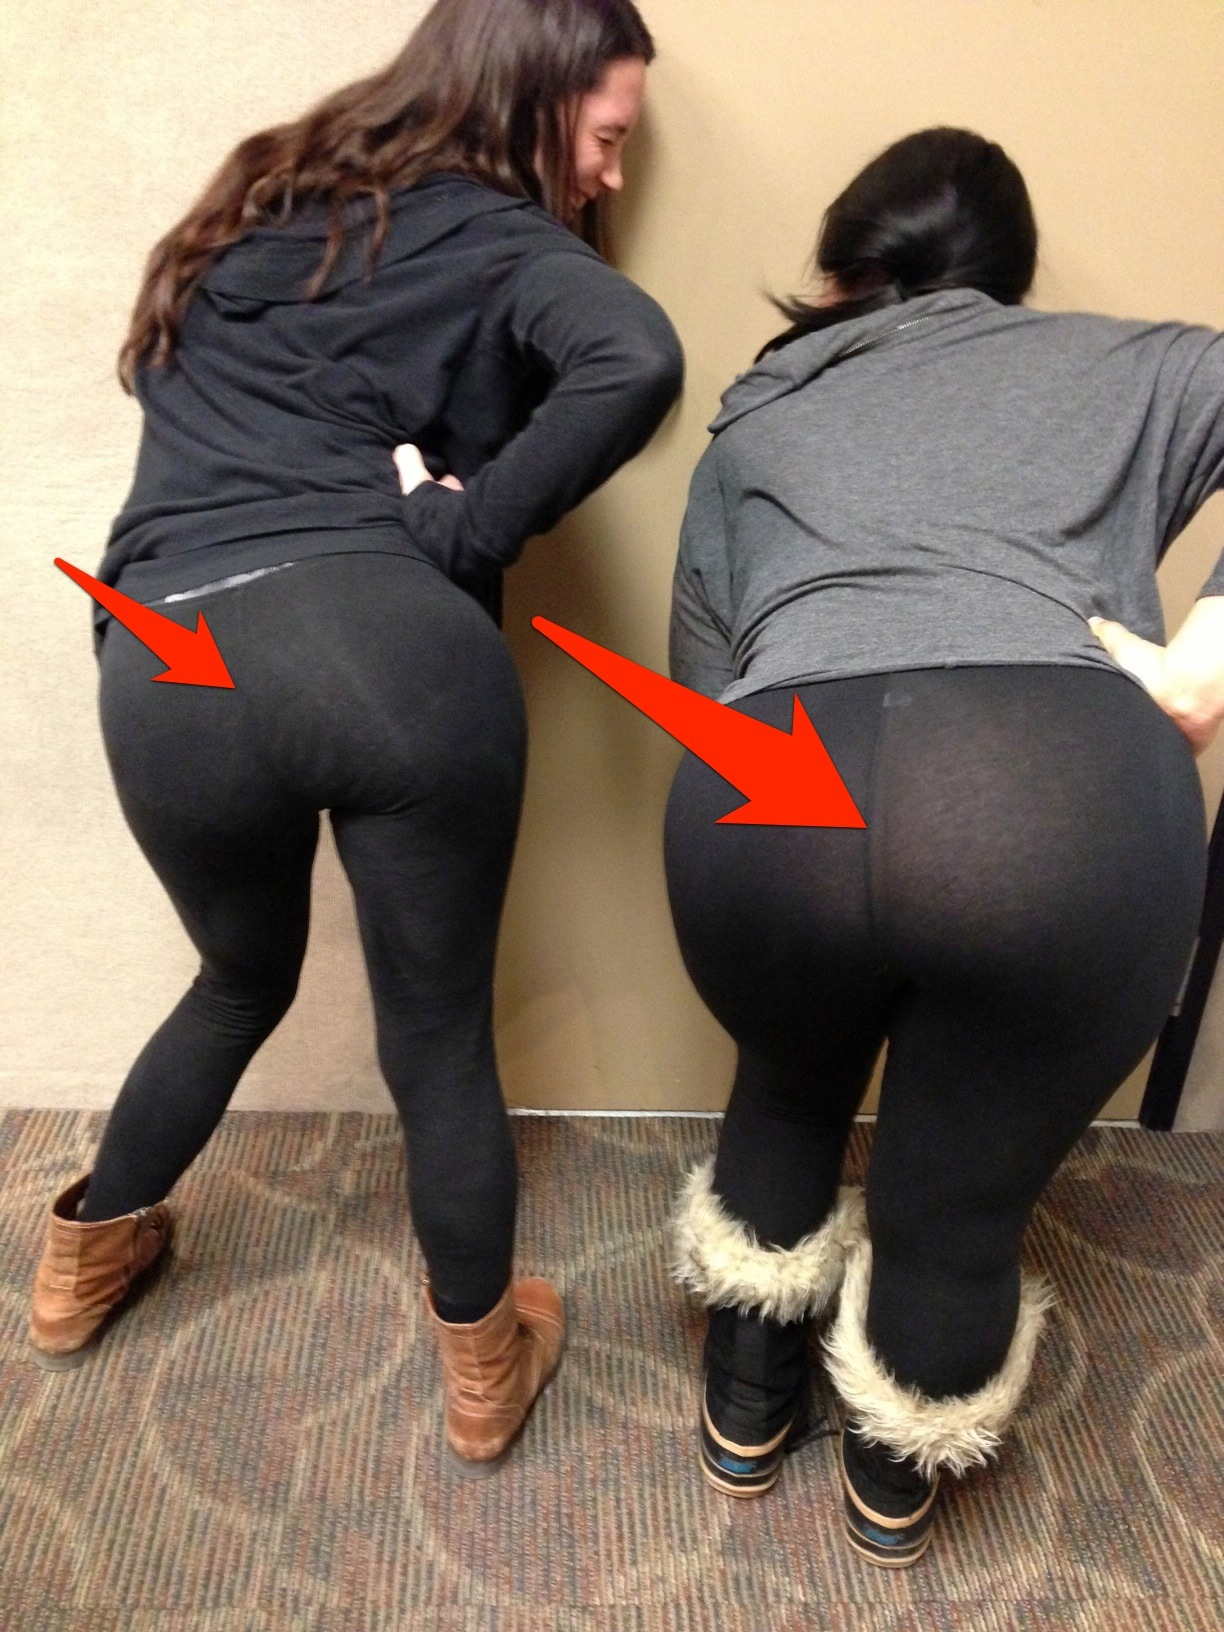 In a Democracy, All Yoga Pants are Not Equal | The Cosmic Grape